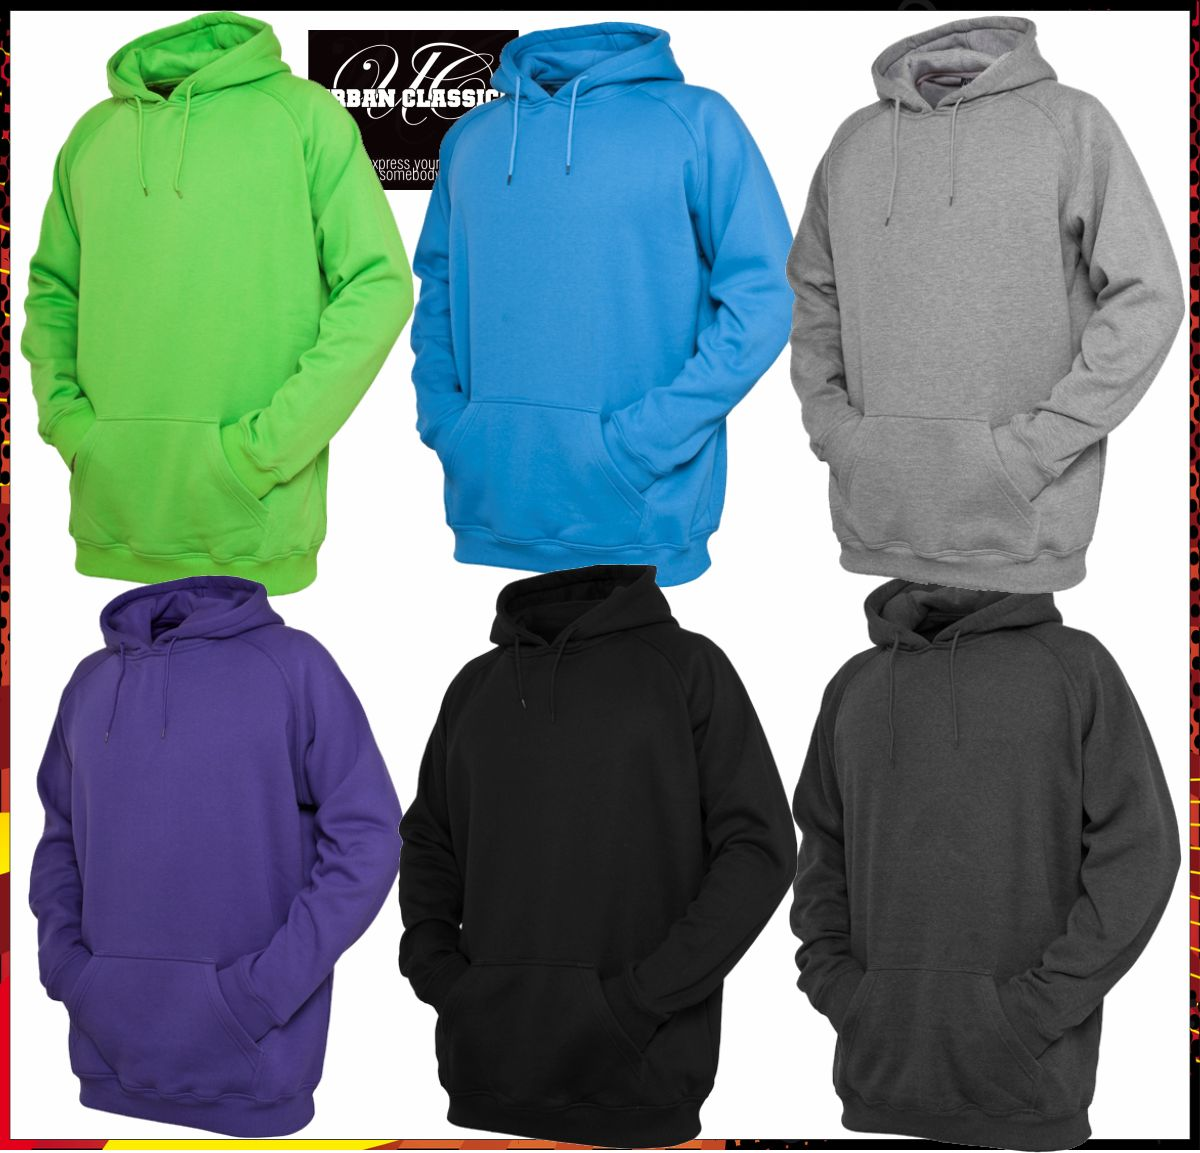 Find great deals on eBay for big hoodies. Shop with confidence.